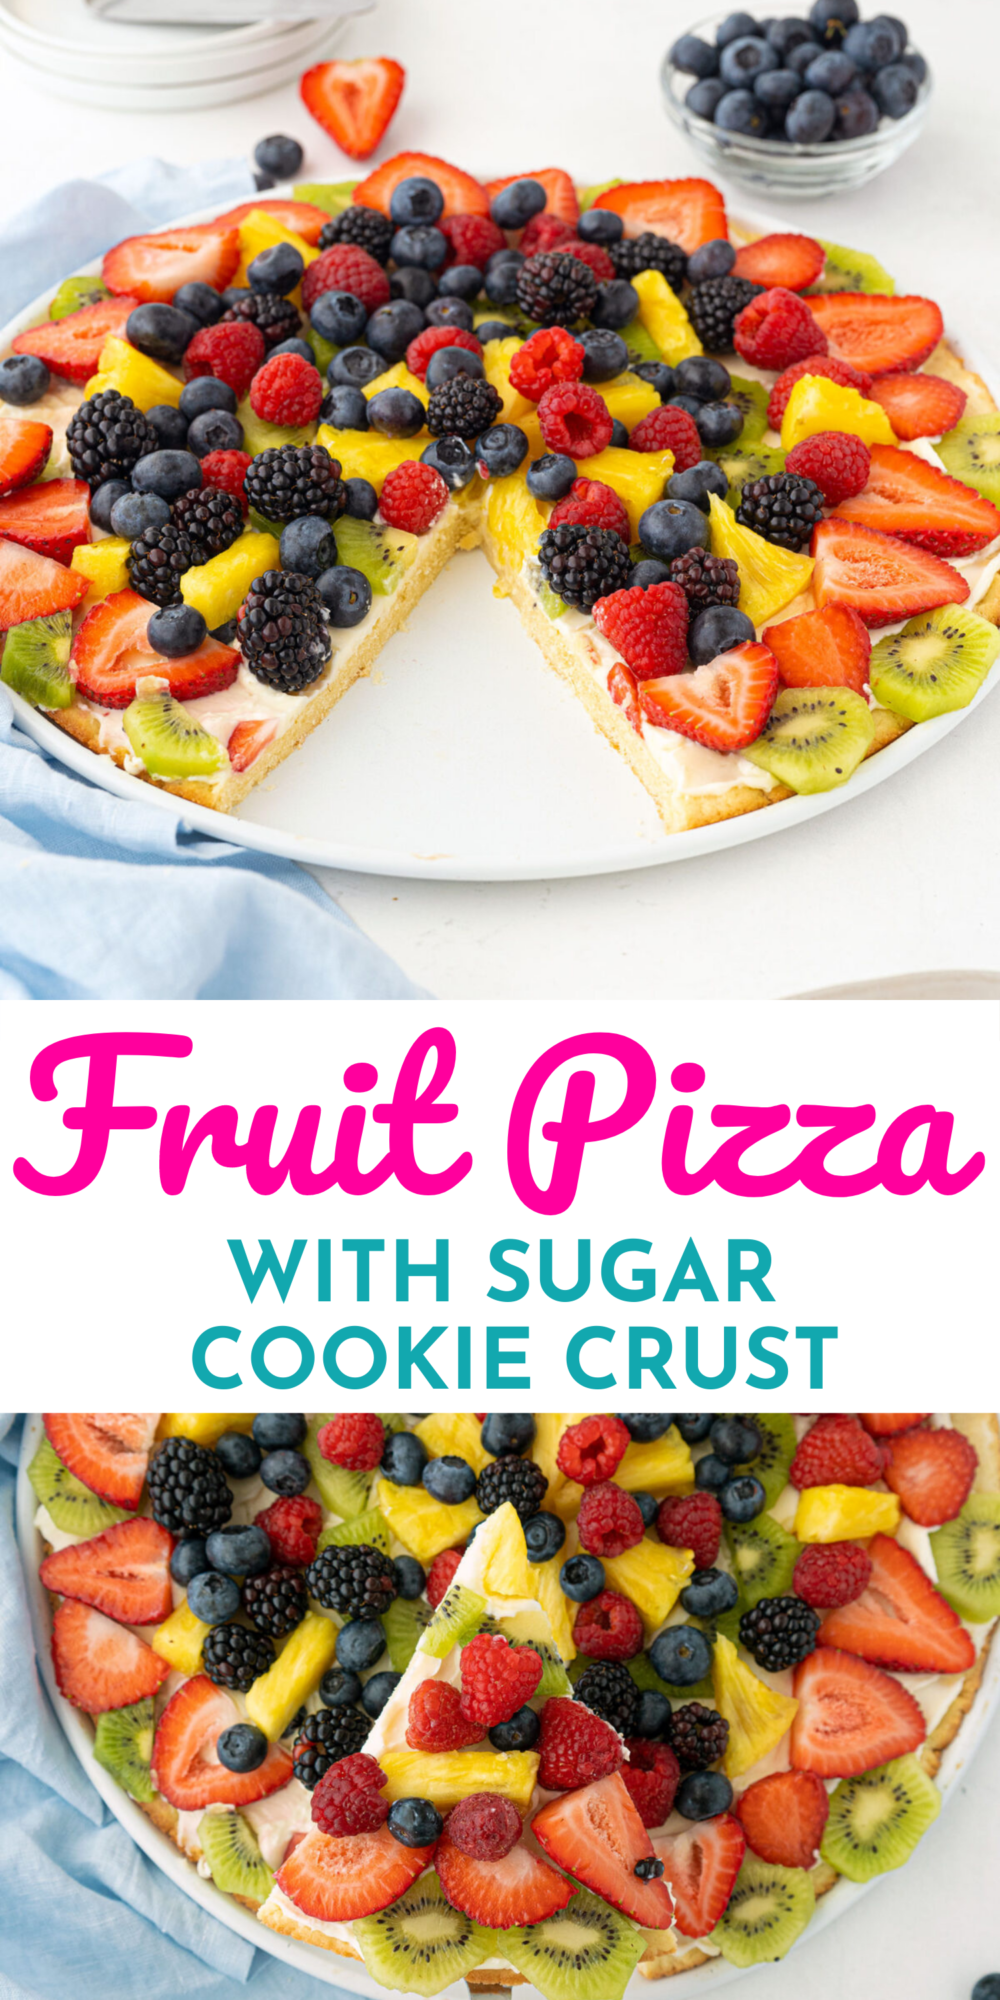 Fruit pizza is an amazing dessert pizza that has a shortbread crust, a cream cheese layer, then layers of delicious fresh fruit!